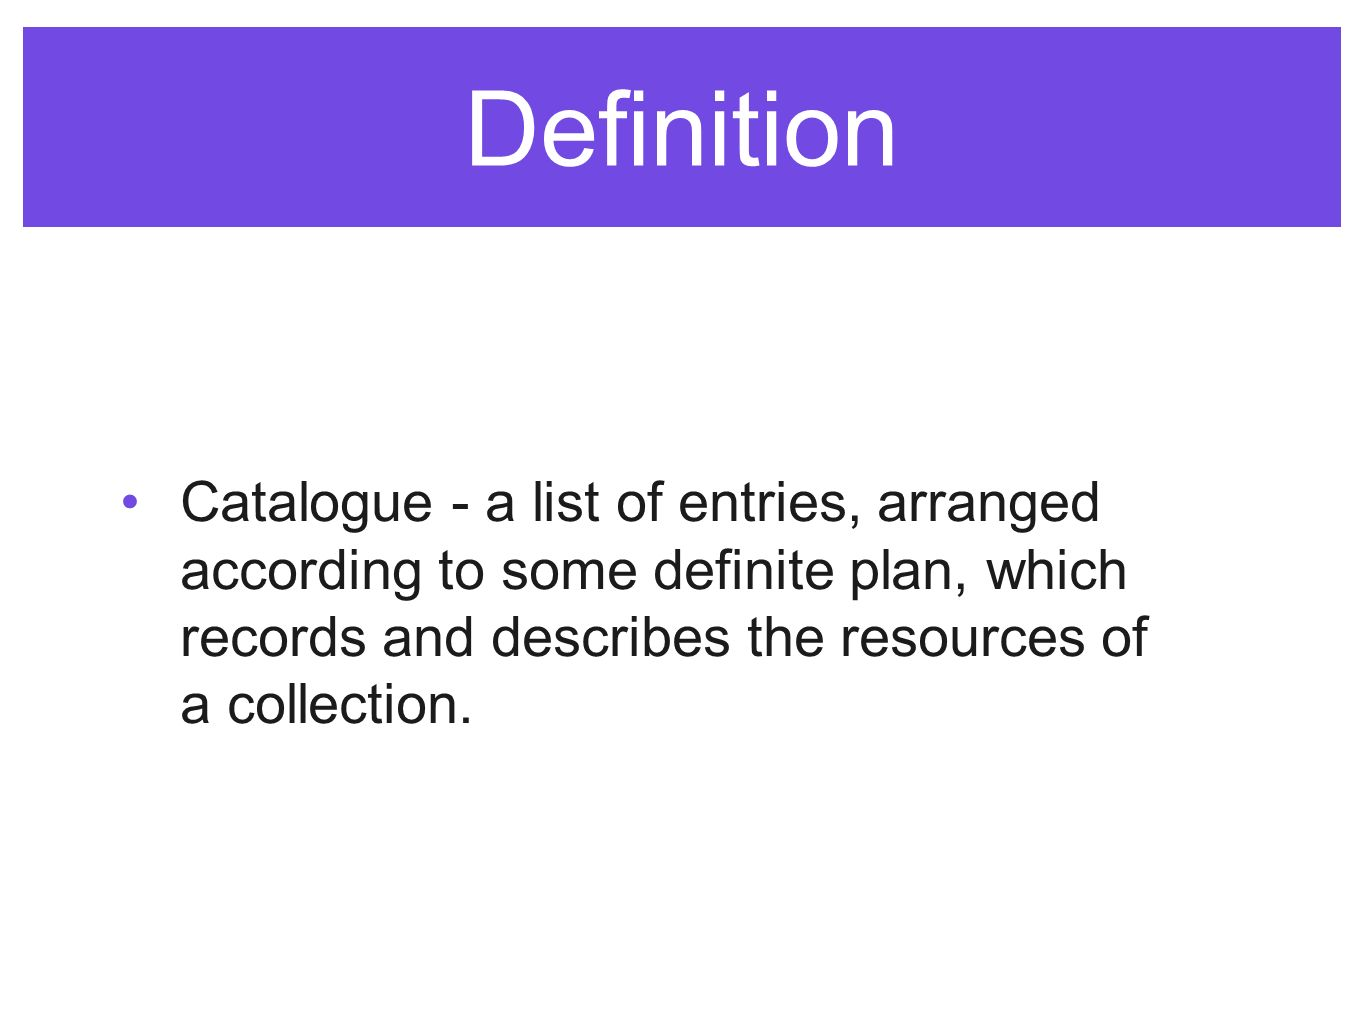 Definition Catalogue - a list of entries, arranged according to some definite plan, which records and describes the resources of a collection.